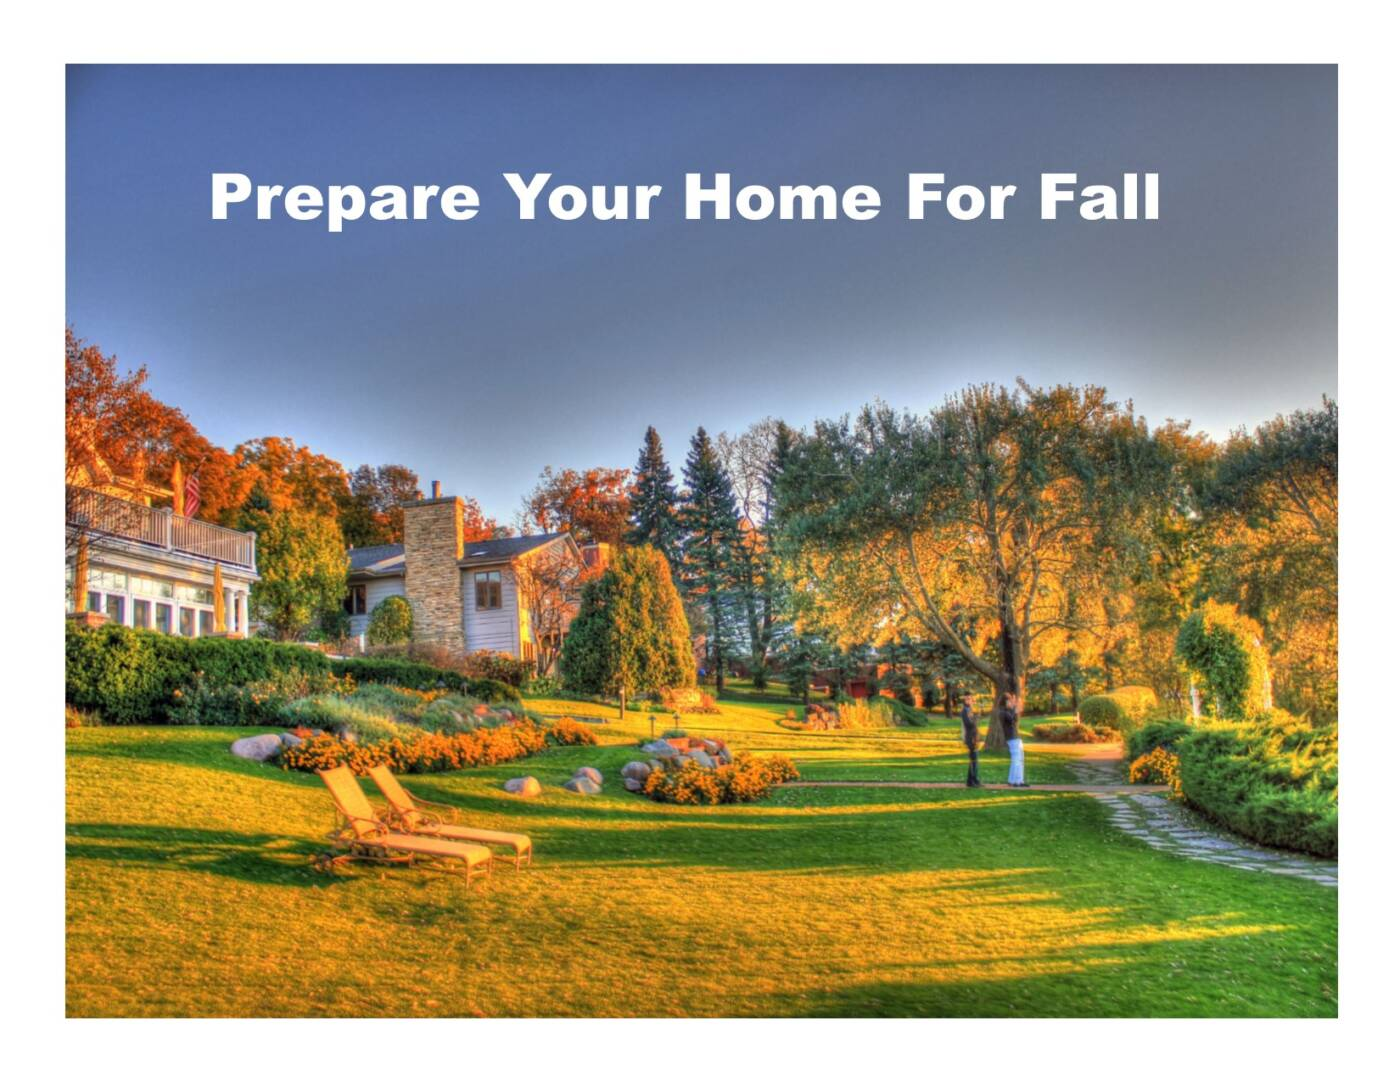 Fall Maintenance Tips for Your Home